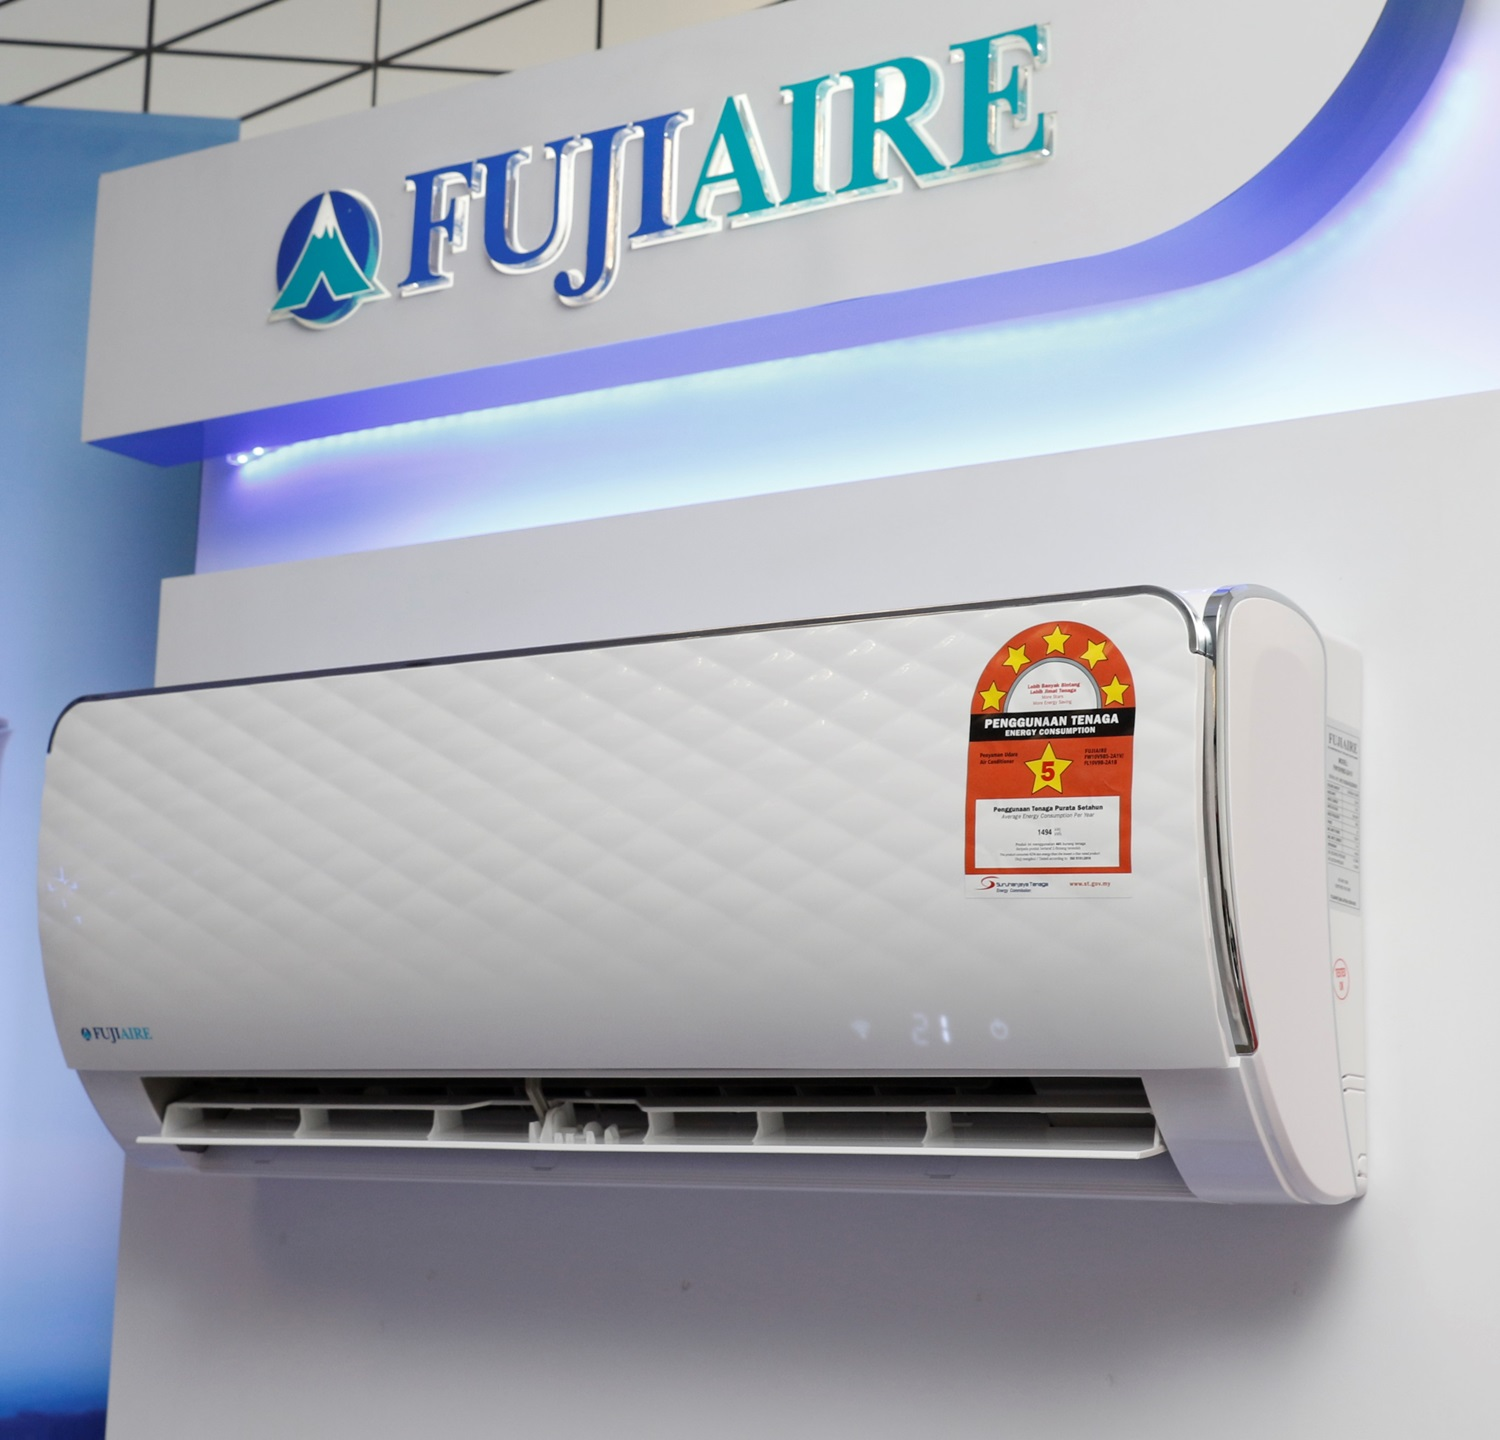 Fujiaire DIamond Series Air-Conditioner